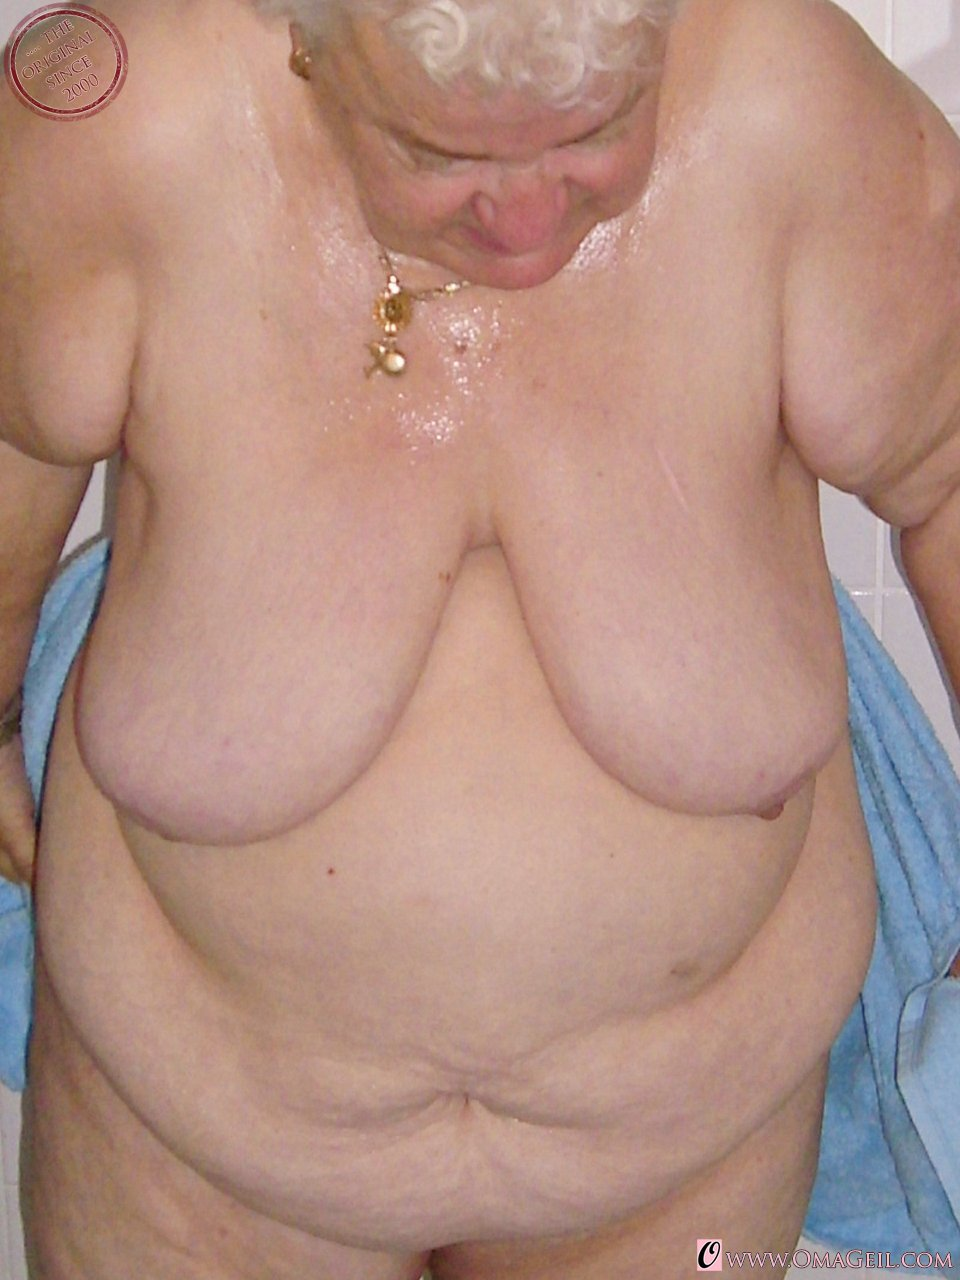 click here and see old women with big saggy wrinkly boobs